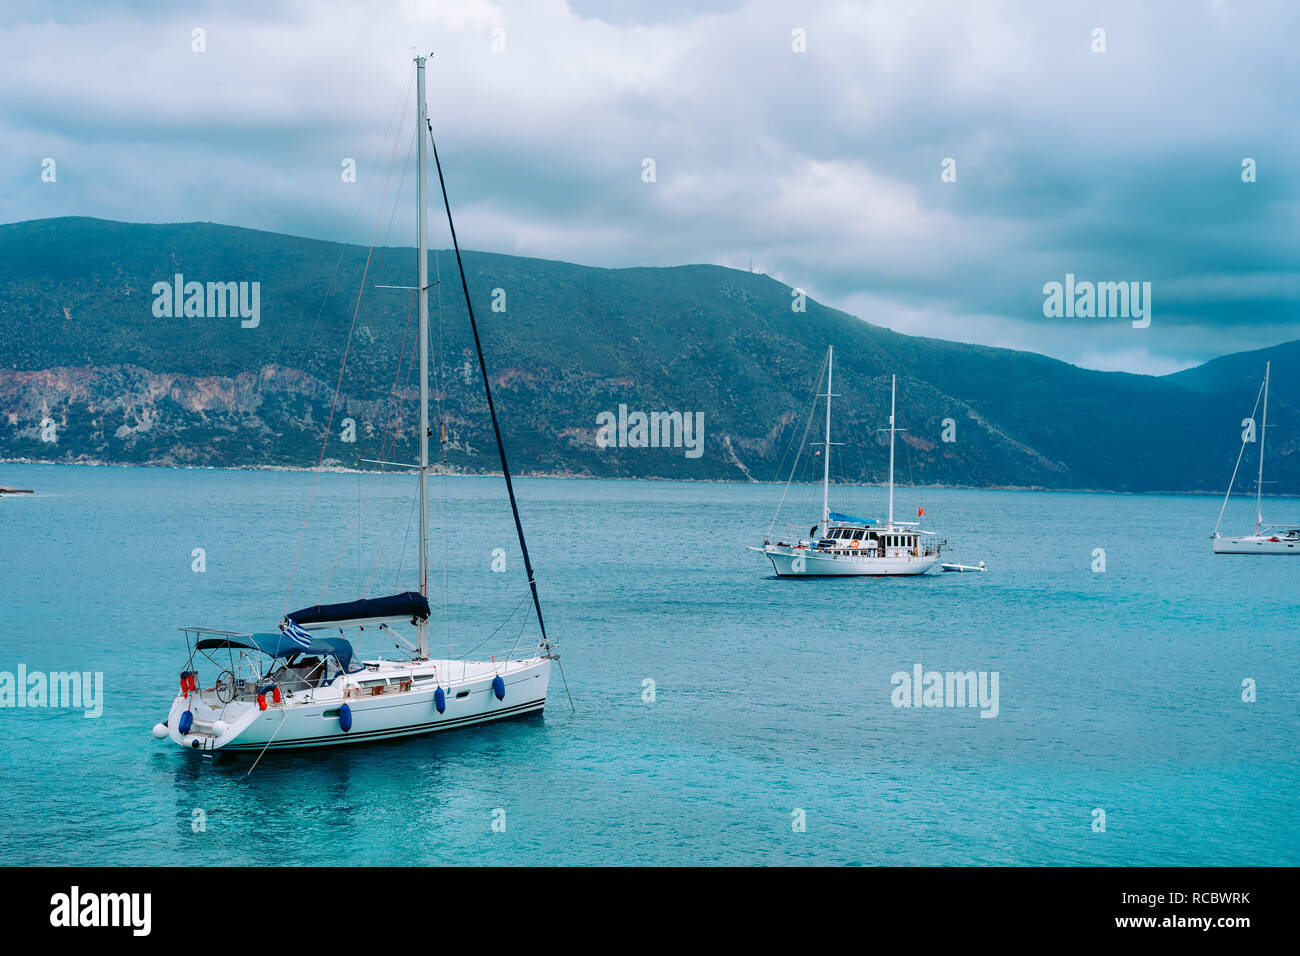 Yachts anchored near beautiful greek shoreline, on an overcast day in summer, coastal, travel, vacation concept - Stock Image